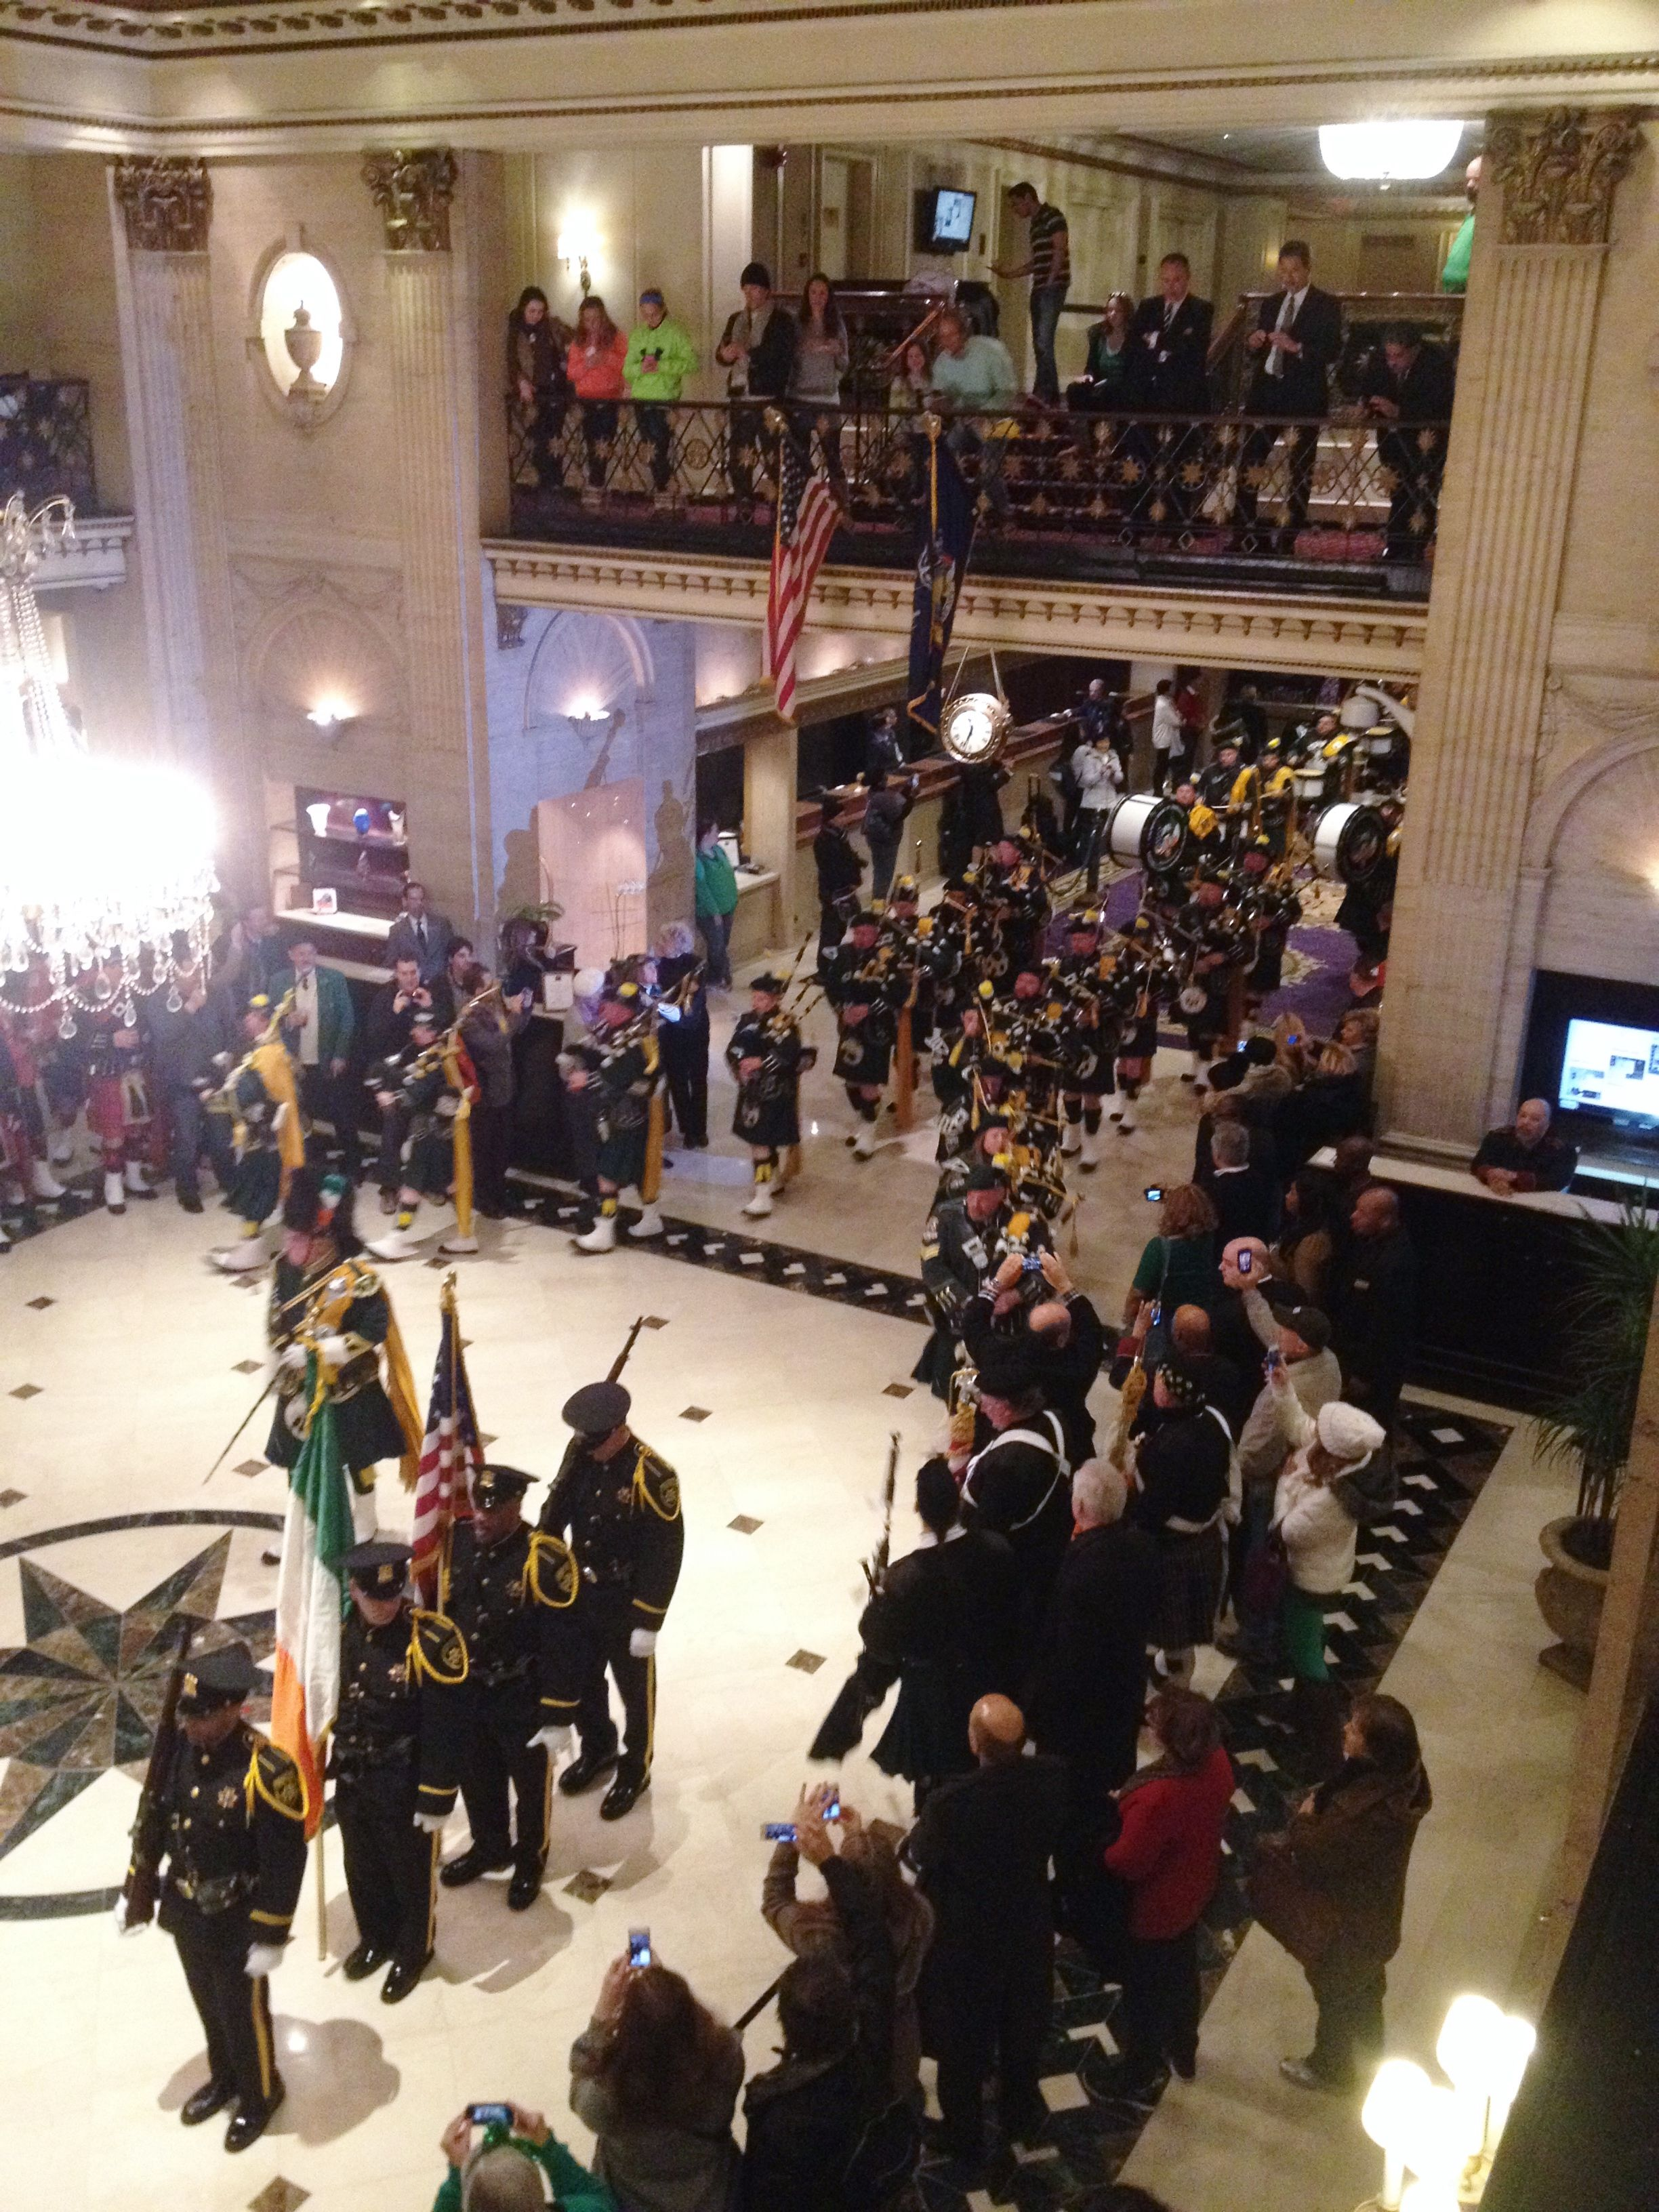 Bagpipe procession entering the lobby